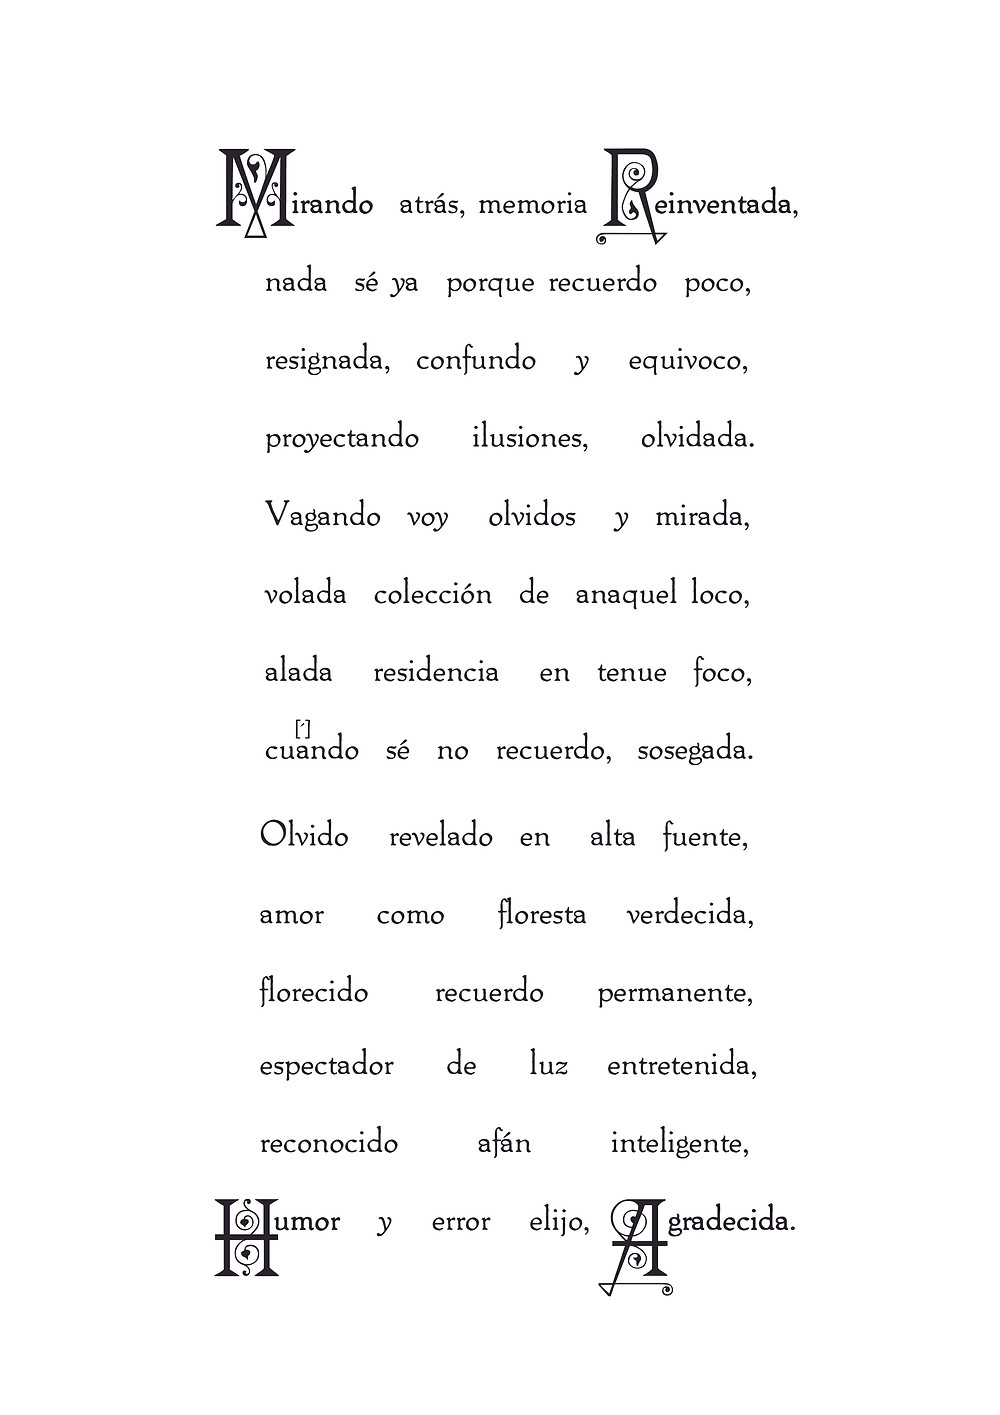 retrogradísimo soneto